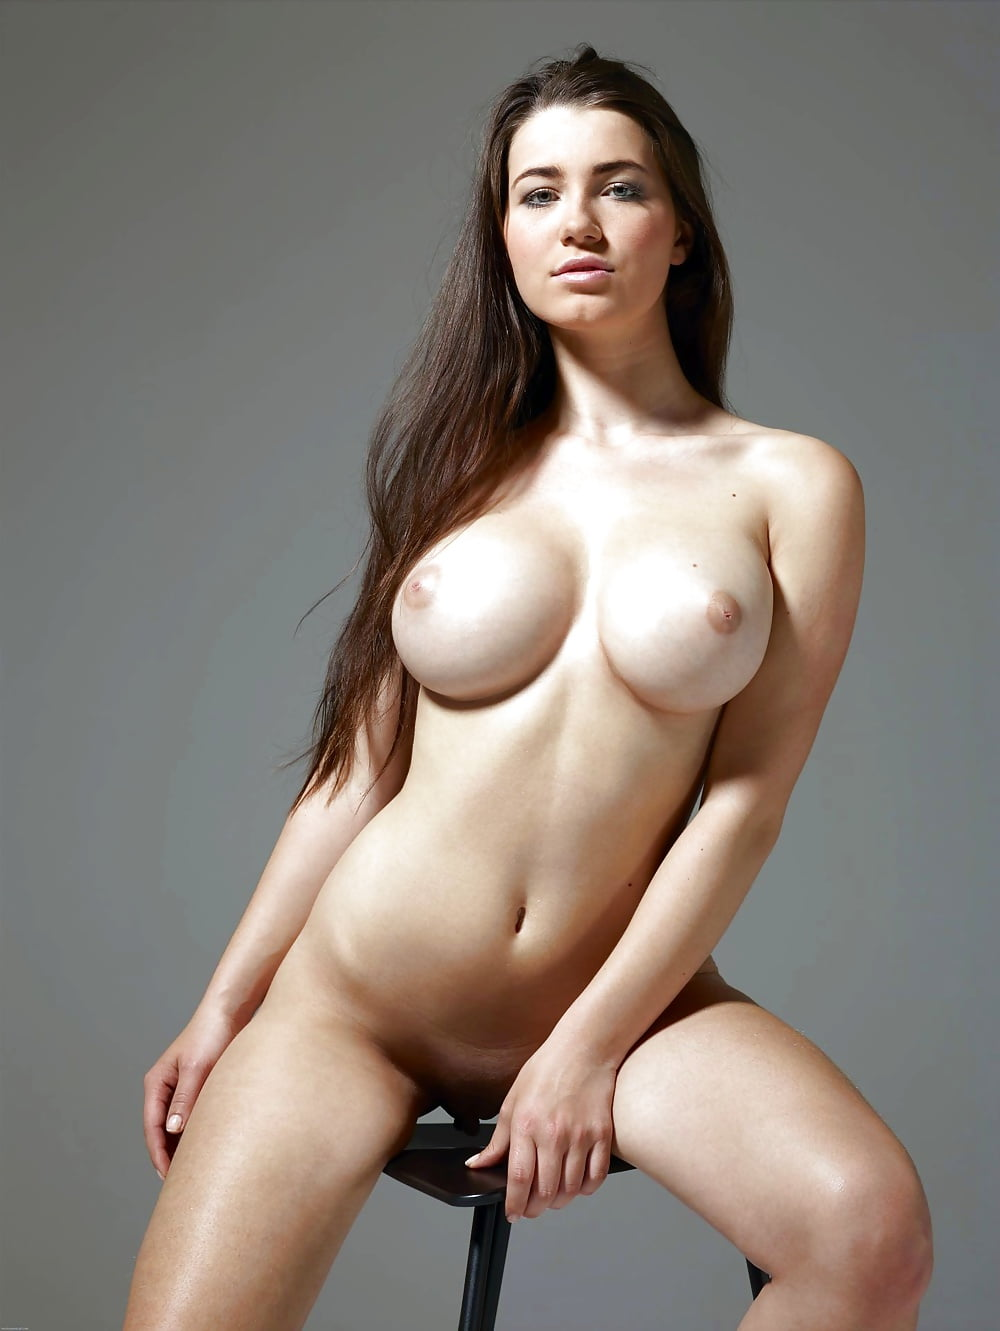 Pictures of archie panjabi nude